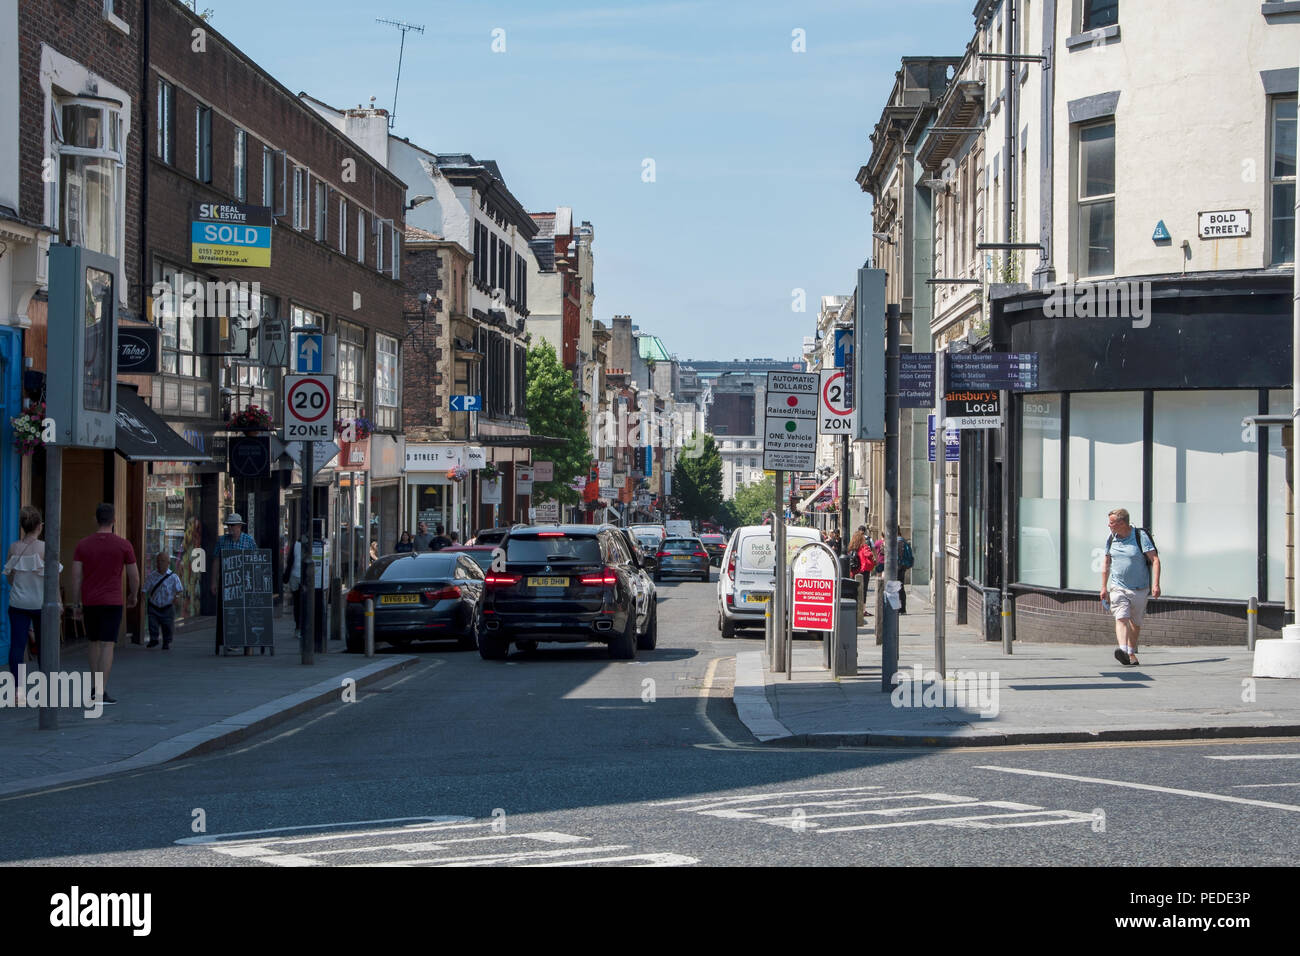 Looking down Bold Street, Liverpool. - Stock Image